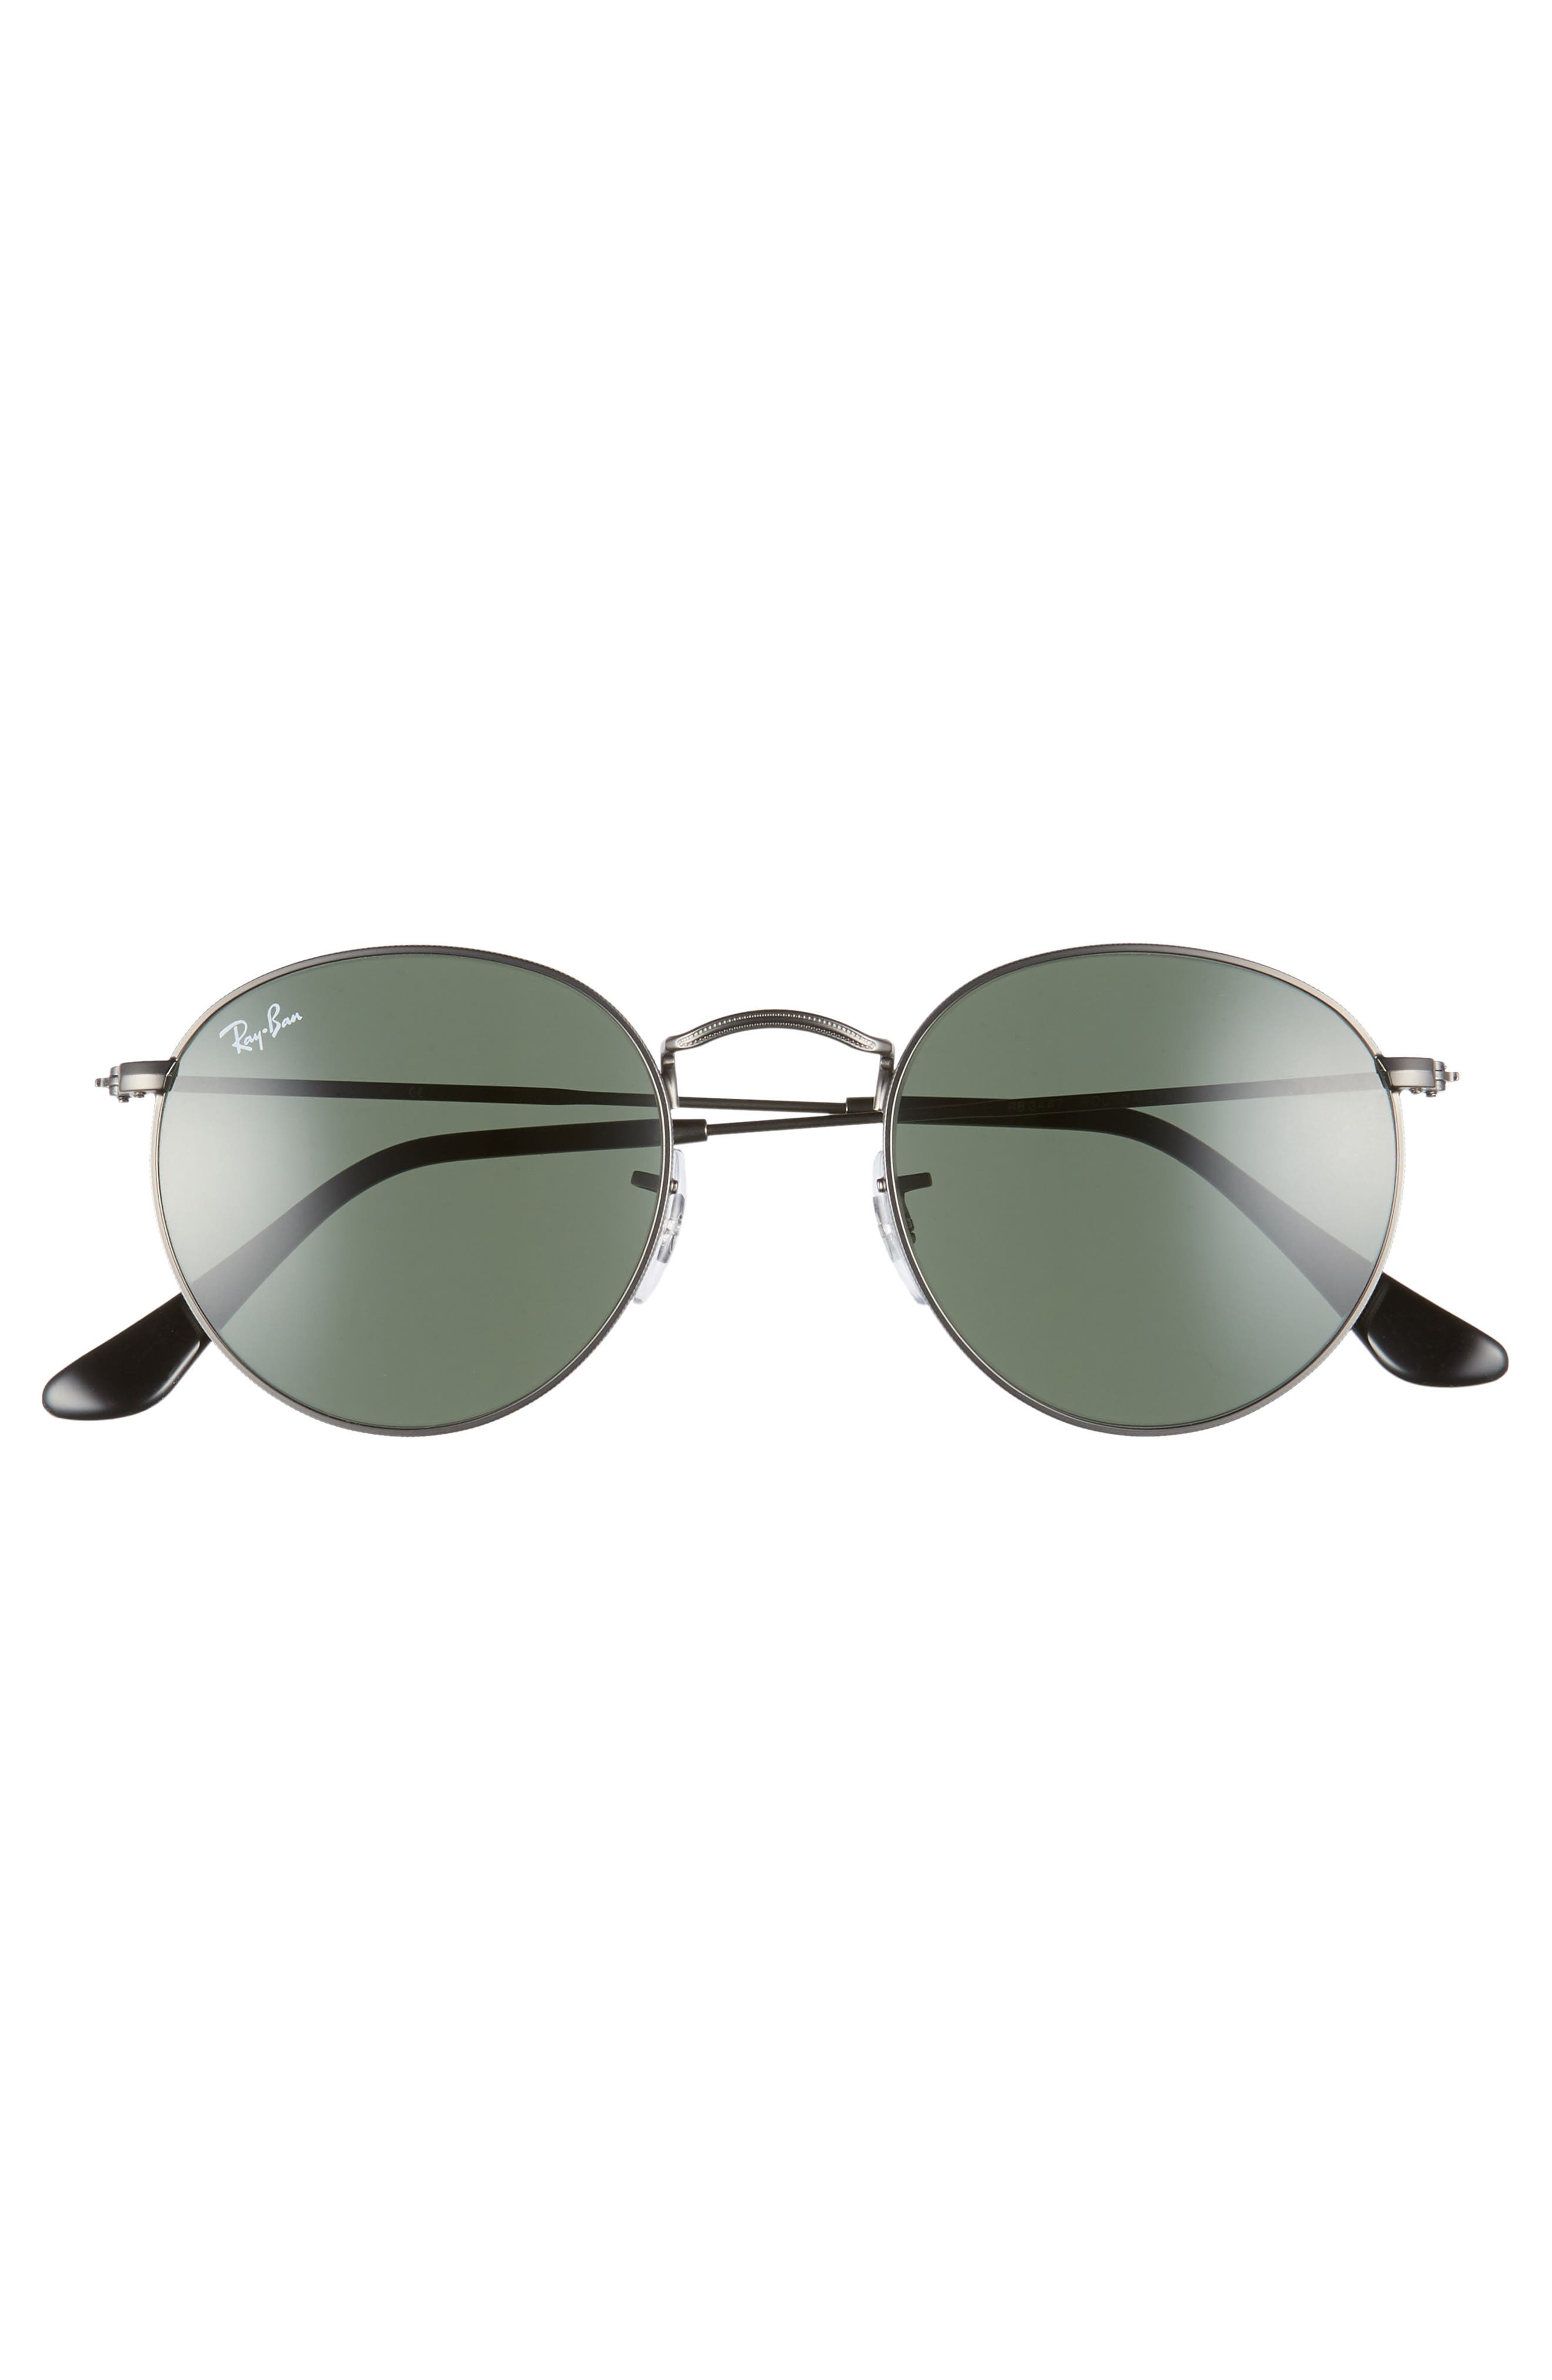 Icons 50mm Round Metal Sunglasses,                             Alternate thumbnail 3, color,                             GUNMETAL/ GREEN SOLID